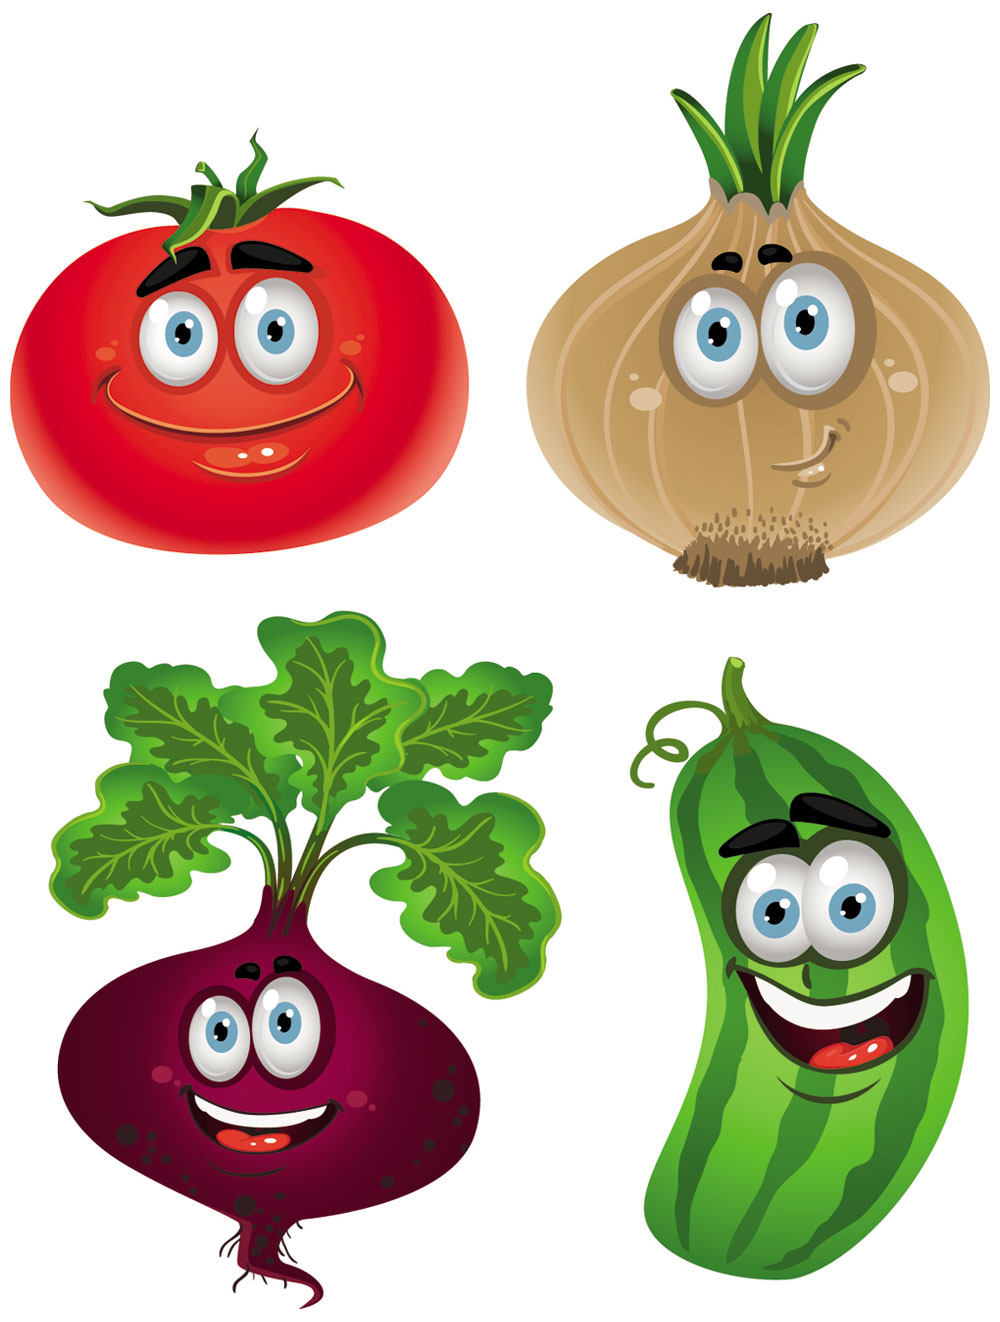 Vegetable Cartoon Image Vector 5   Download Free Vectors